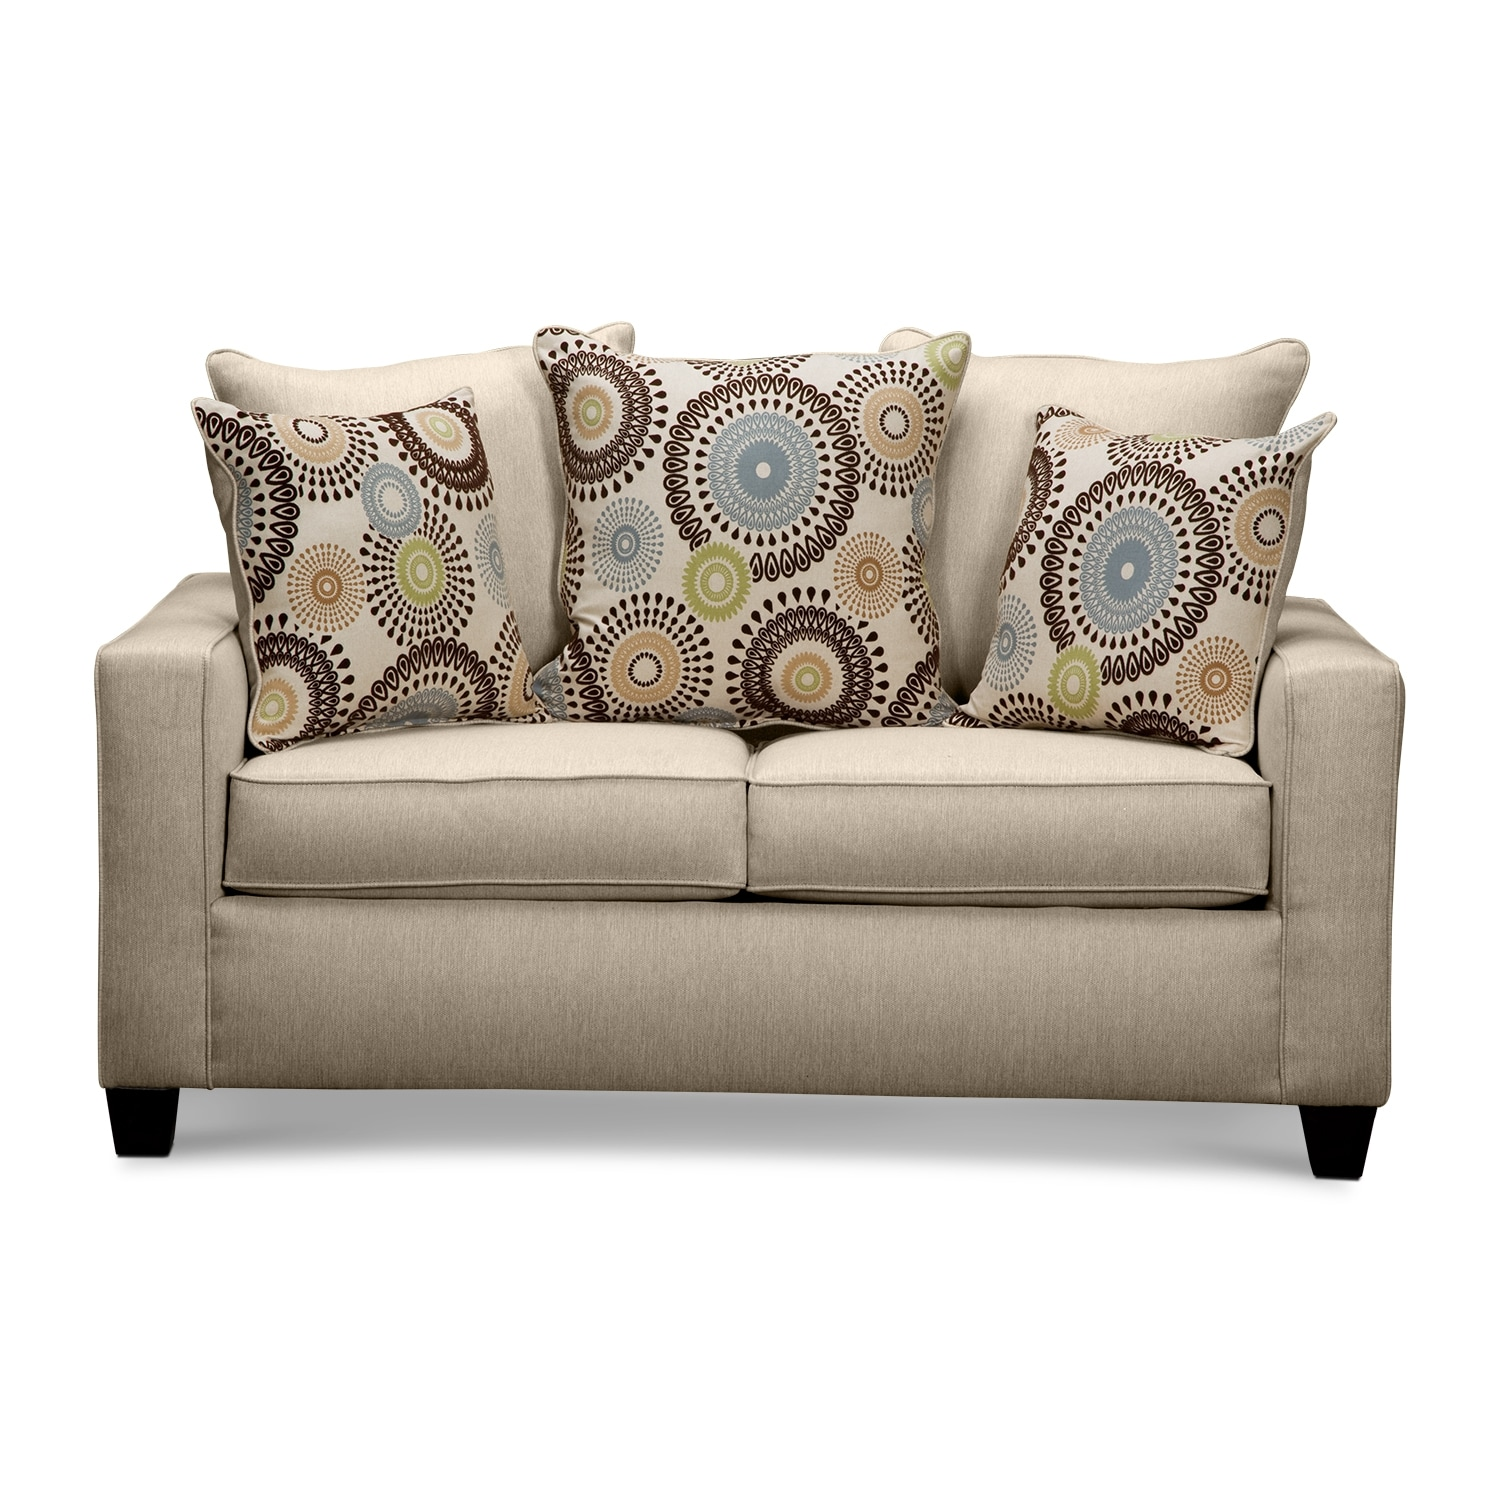 American signature furniture stoked upholstery loveseat